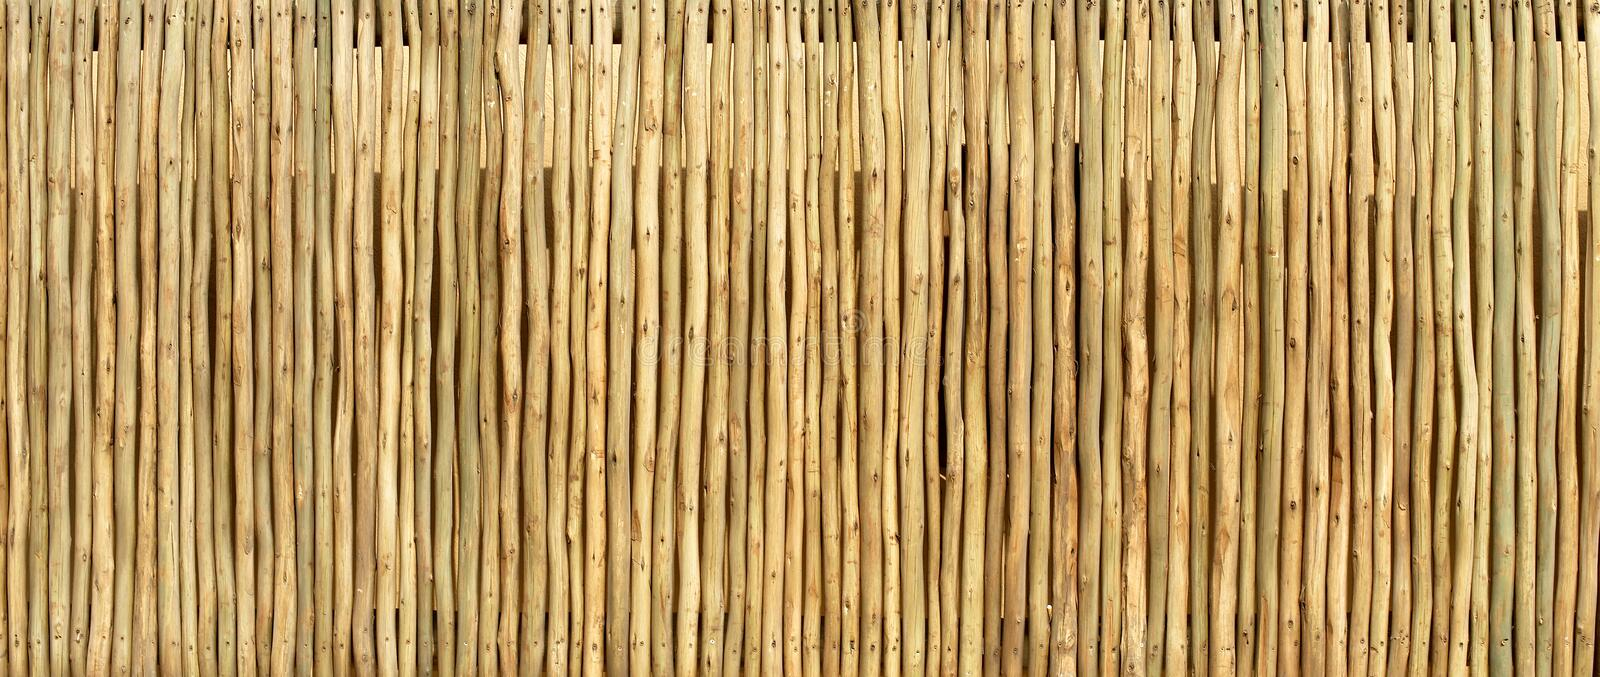 Wooden Pole Screen Texture Stock Photo Image Of Surface